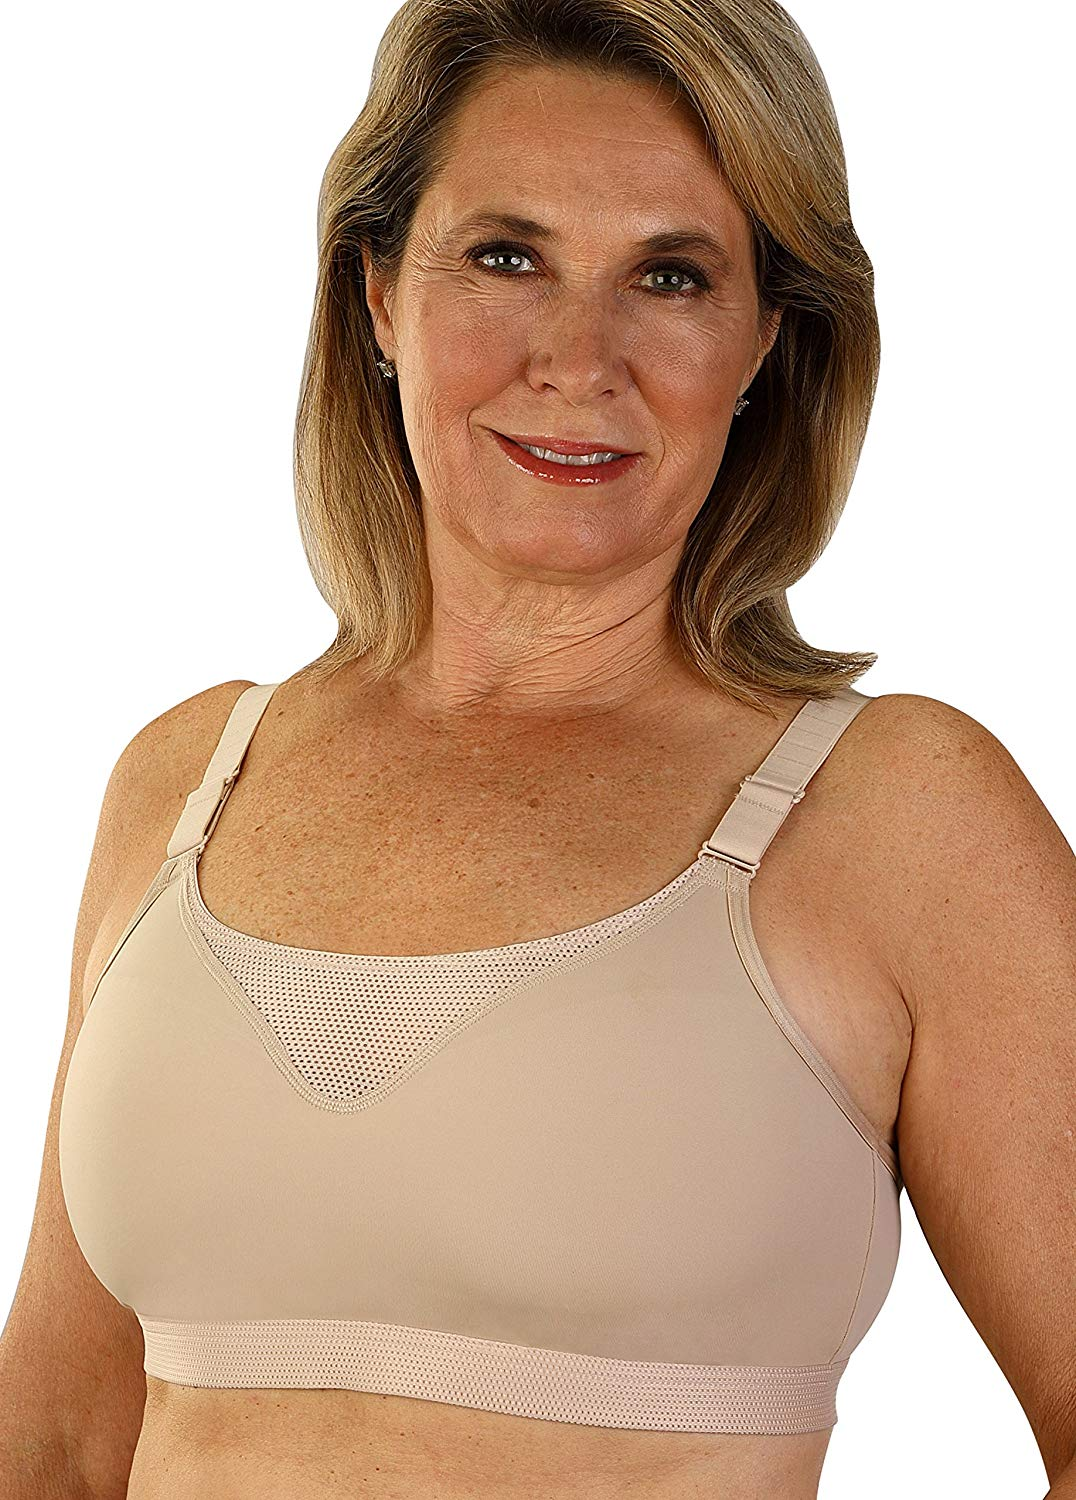 5413715d1bb Cheap Mastectomy Sports Bra, find Mastectomy Sports Bra deals on ...